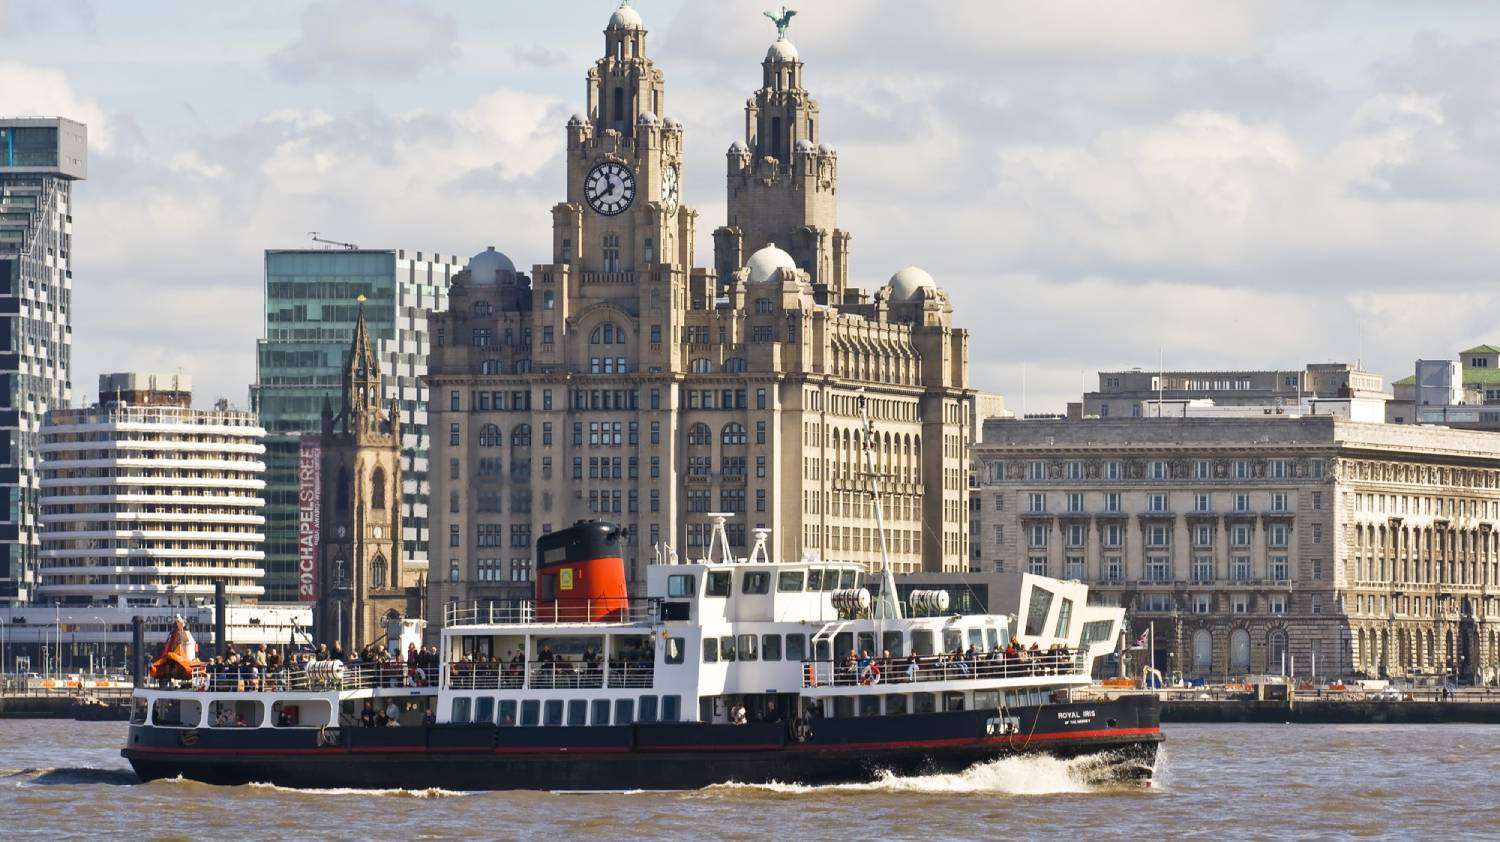 Mersey Ferries - Things To Do In Liverpool